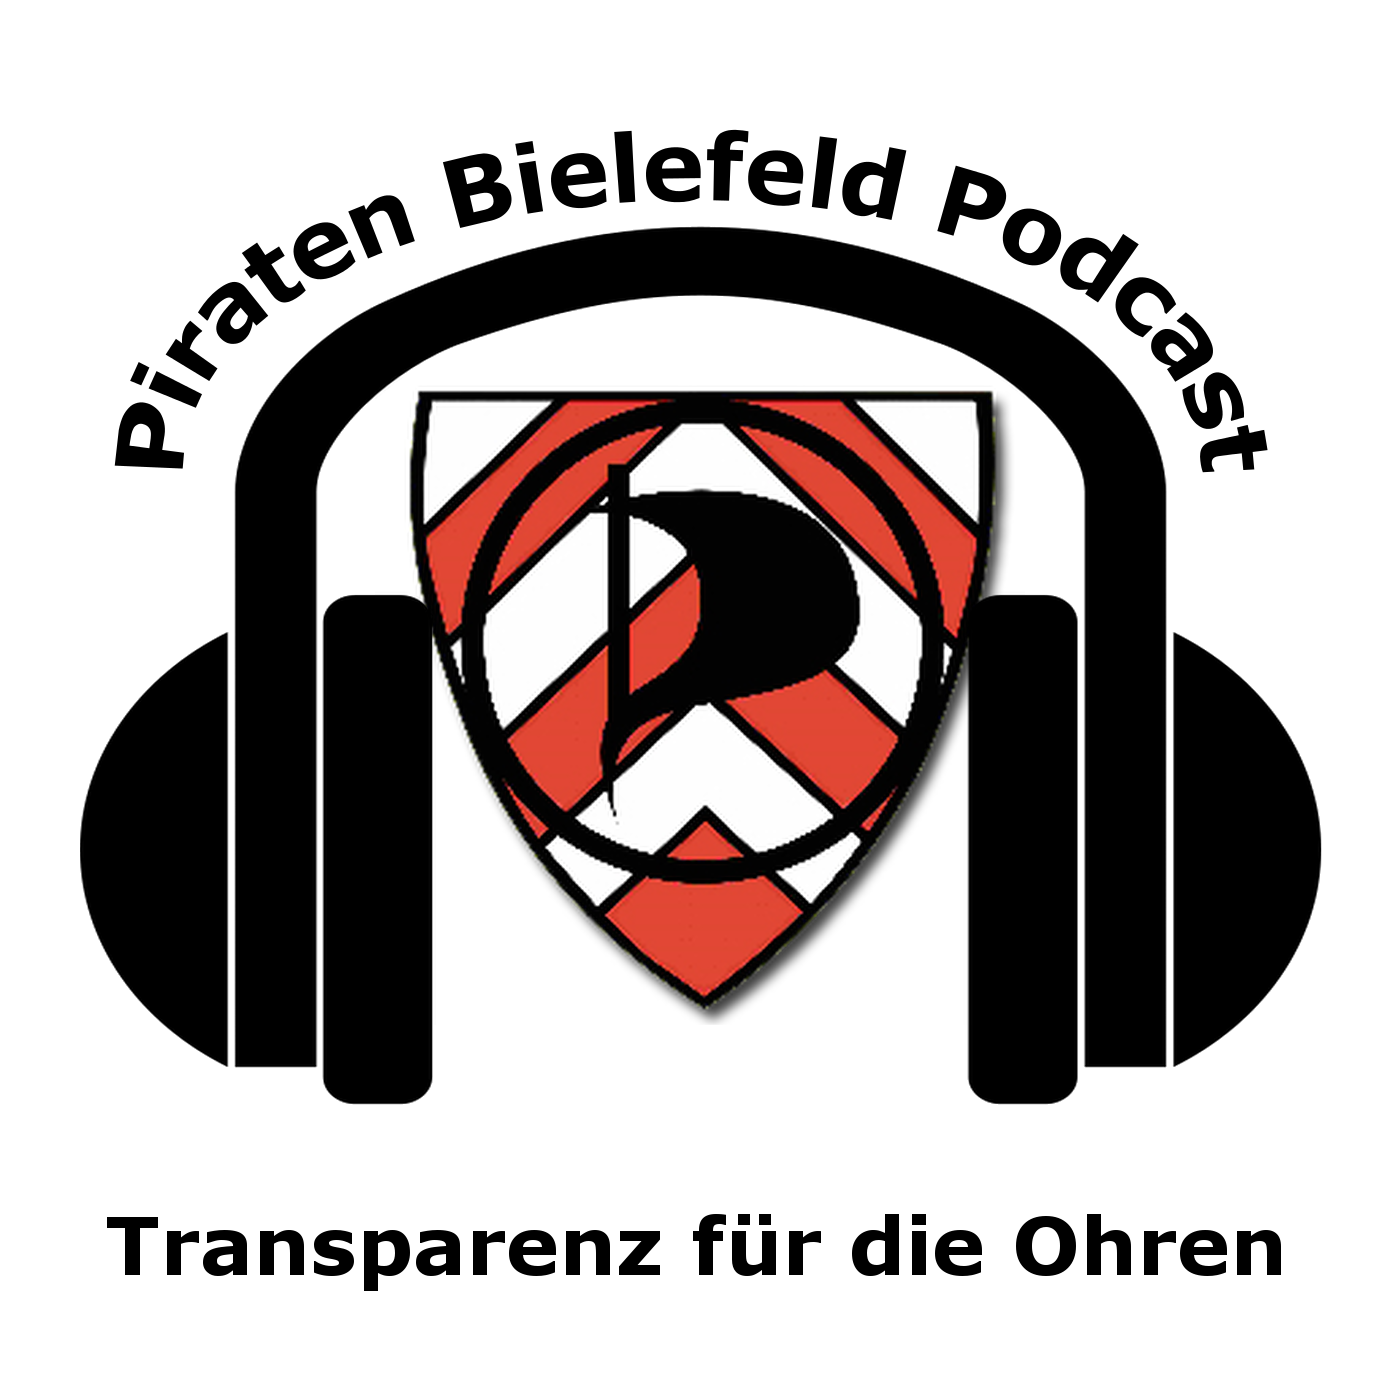 Piraten Bielefeld Podcast